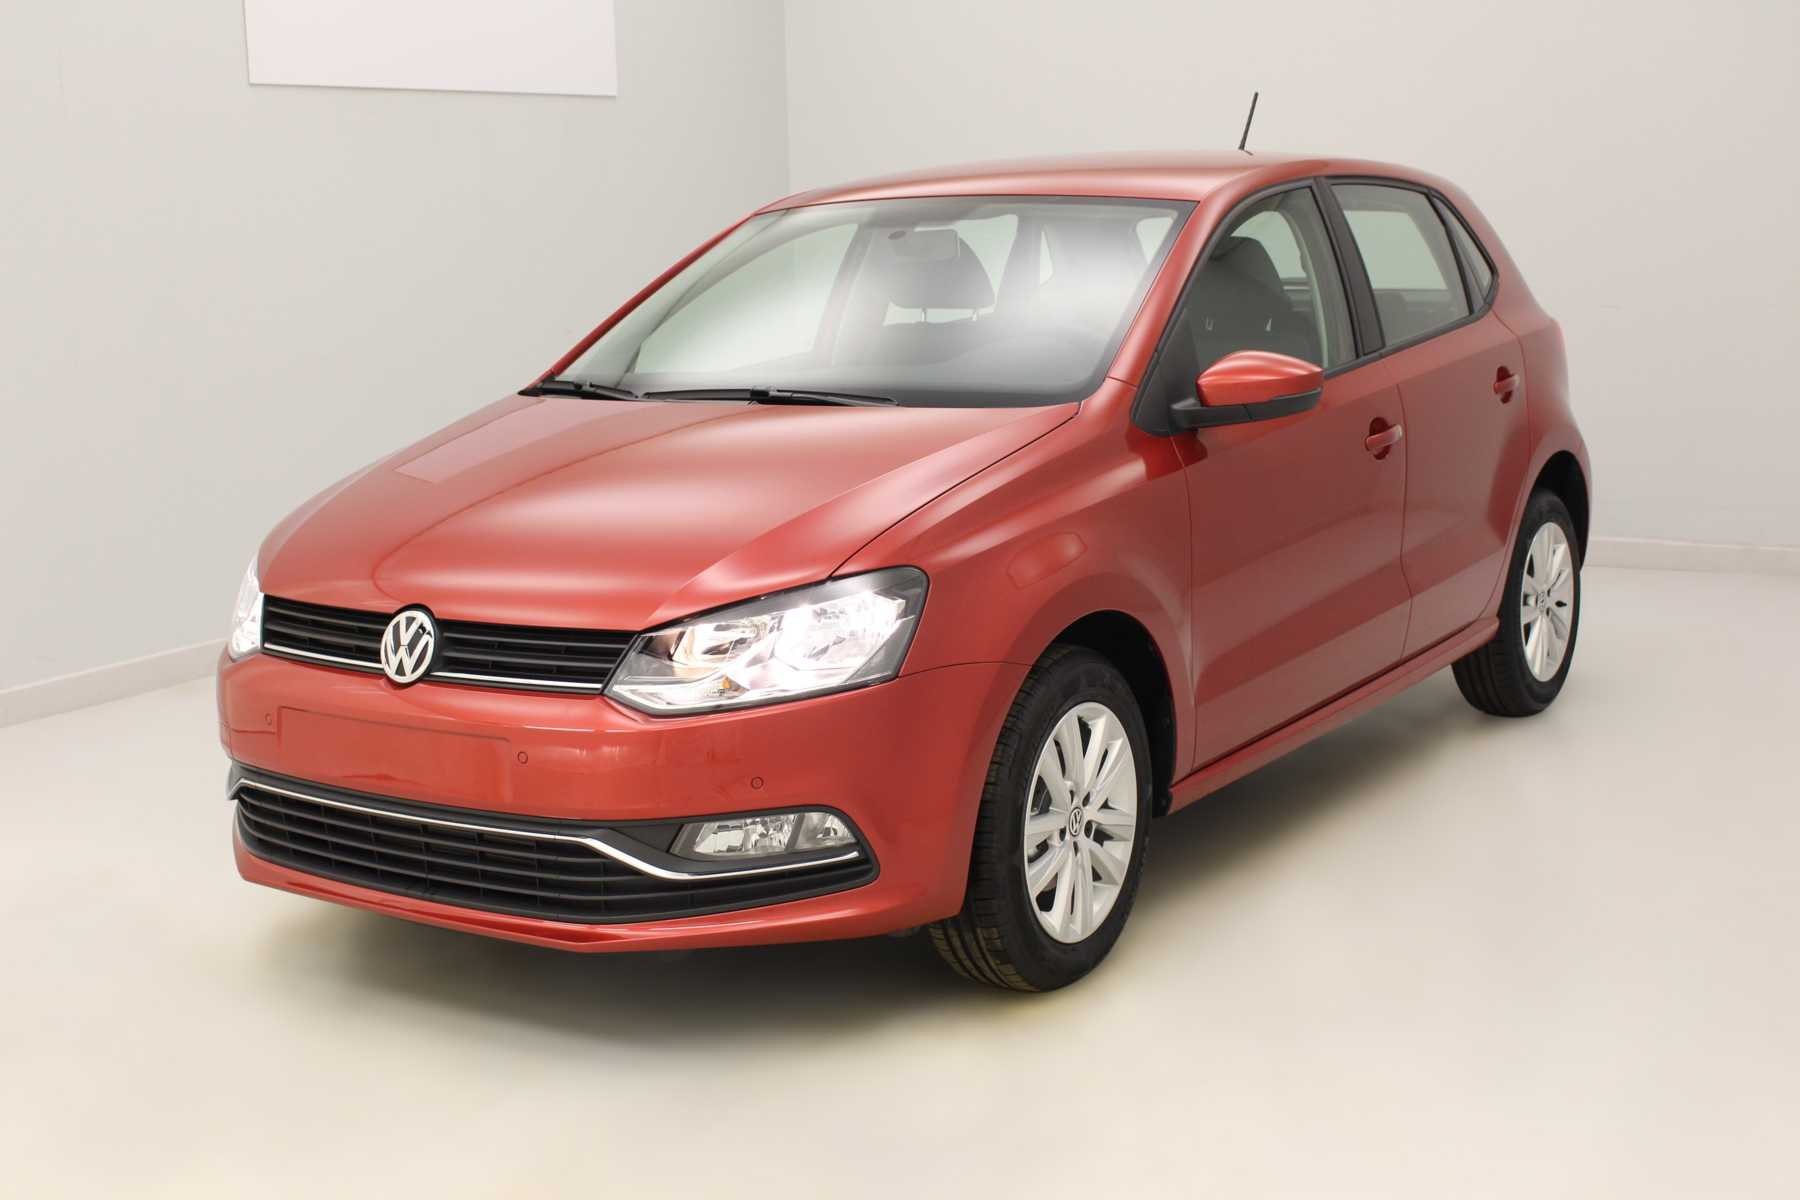 VOLKSWAGEN Nouvelle Polo 1.4 TDI 90 BlueMotion Technology Confortline Rouge Sunset - Garantie 5 ans ou 100.000 kms avec options